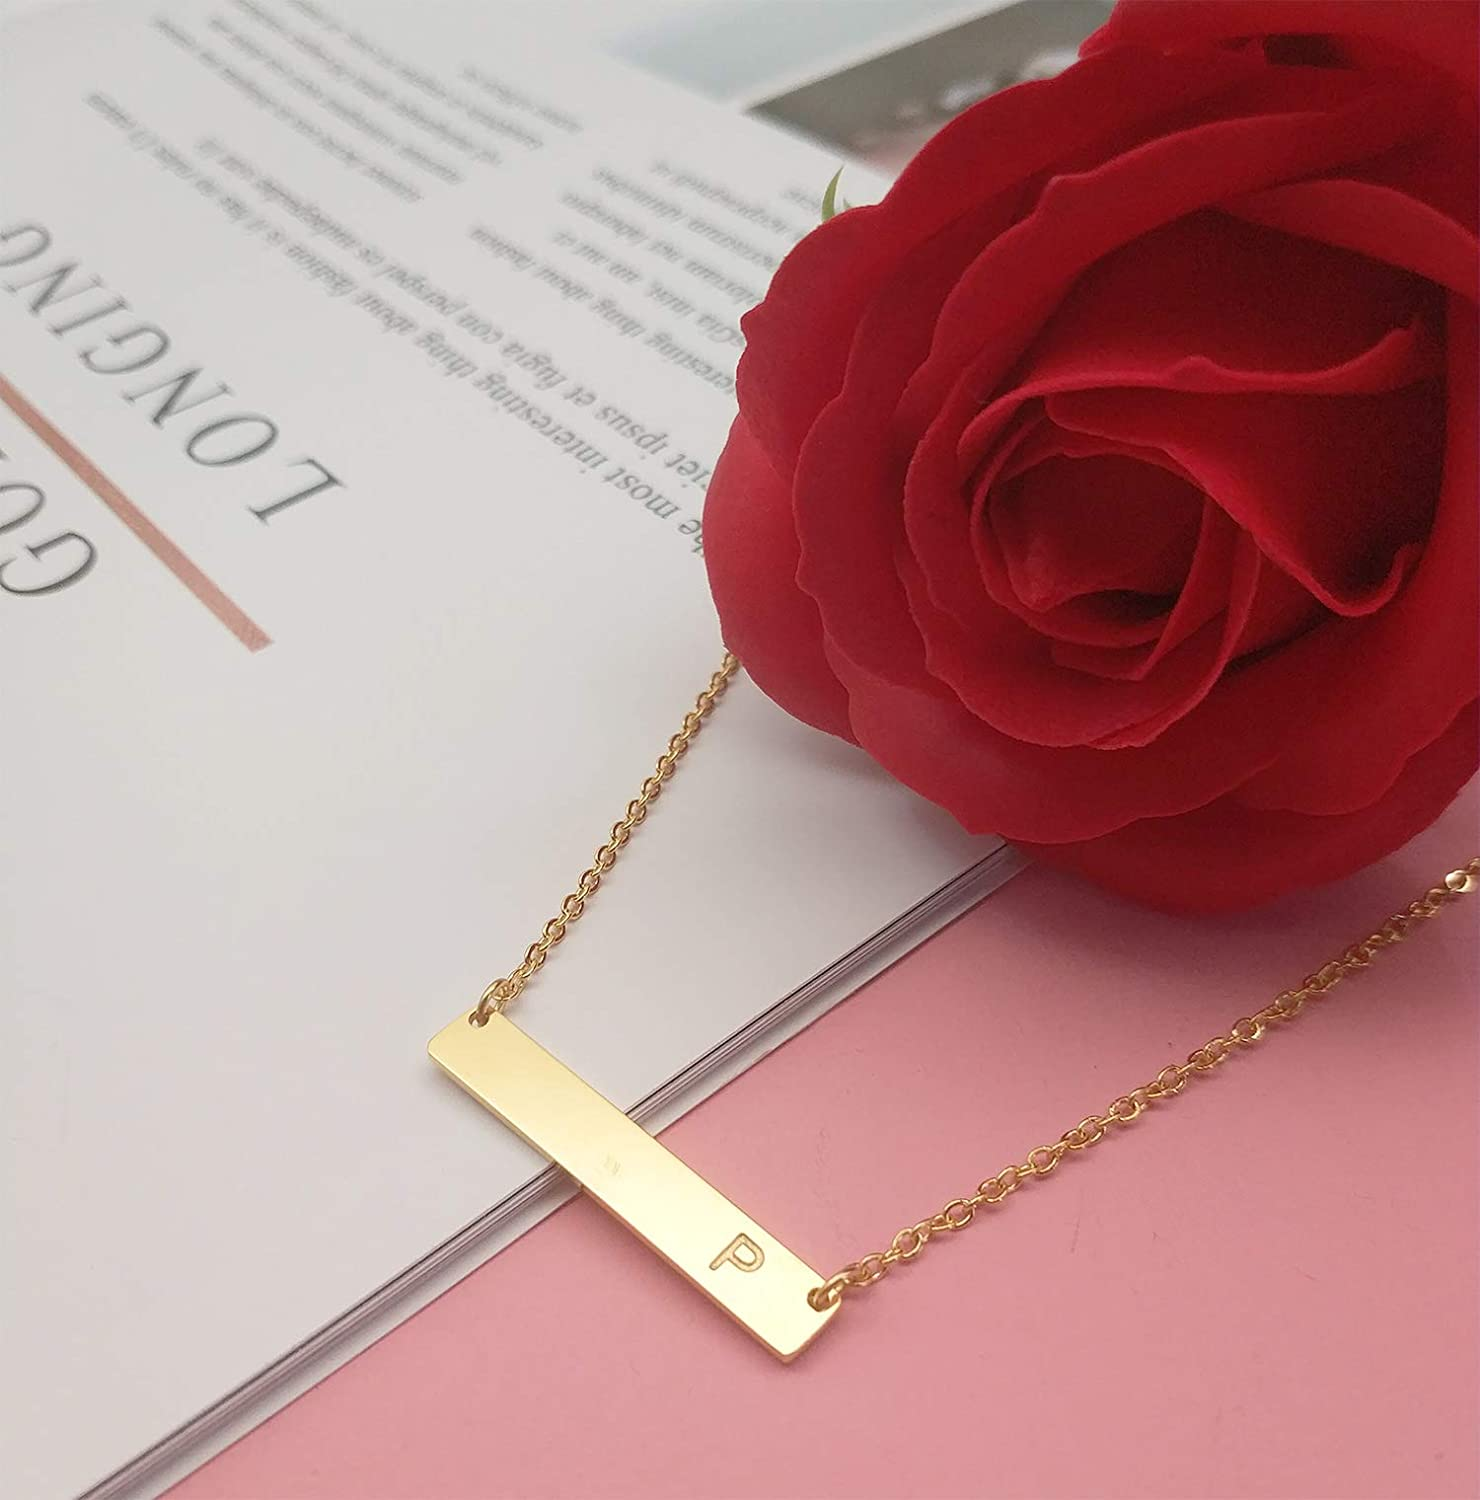 18K Gold Plated Stainless Steel Bar Necklace Dainty Delicate Initial Necklace Simple Personalized Name Letter Necklace for Women Girls MOMOL Bar Pendant Initial Necklace